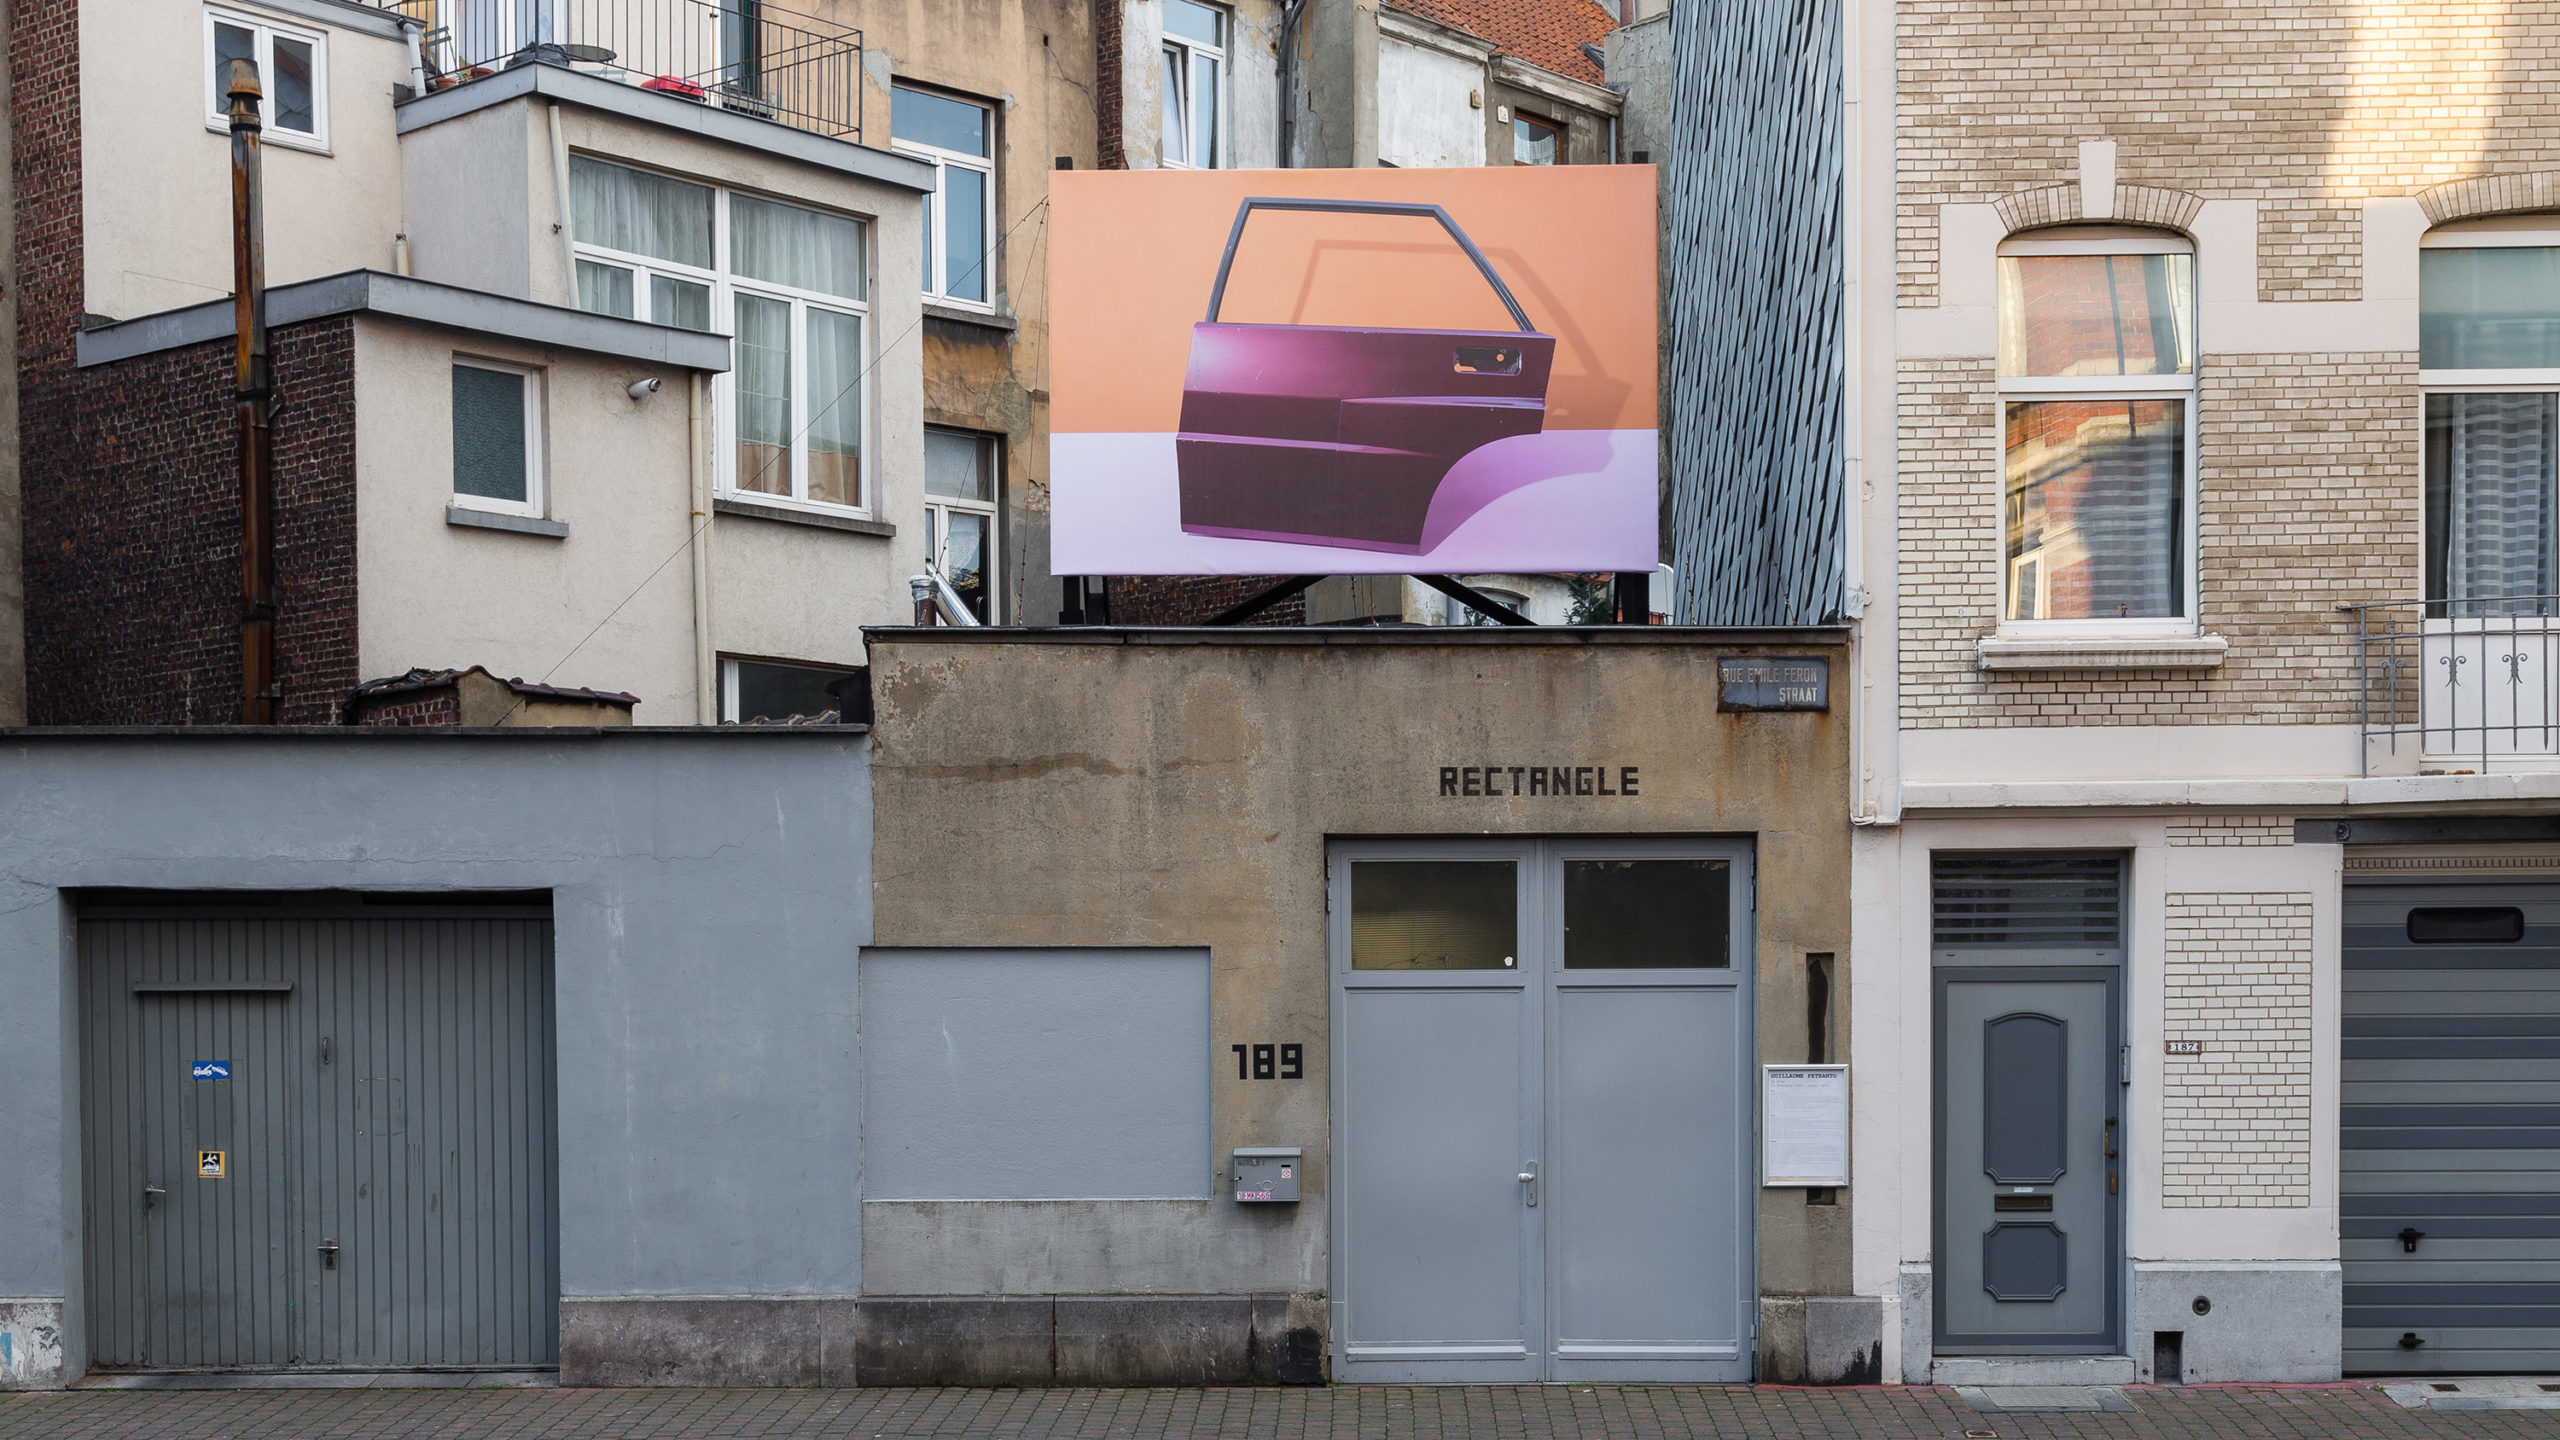 Guillaume Petranto, Te Koop, 2016, Rectangle, Brussels